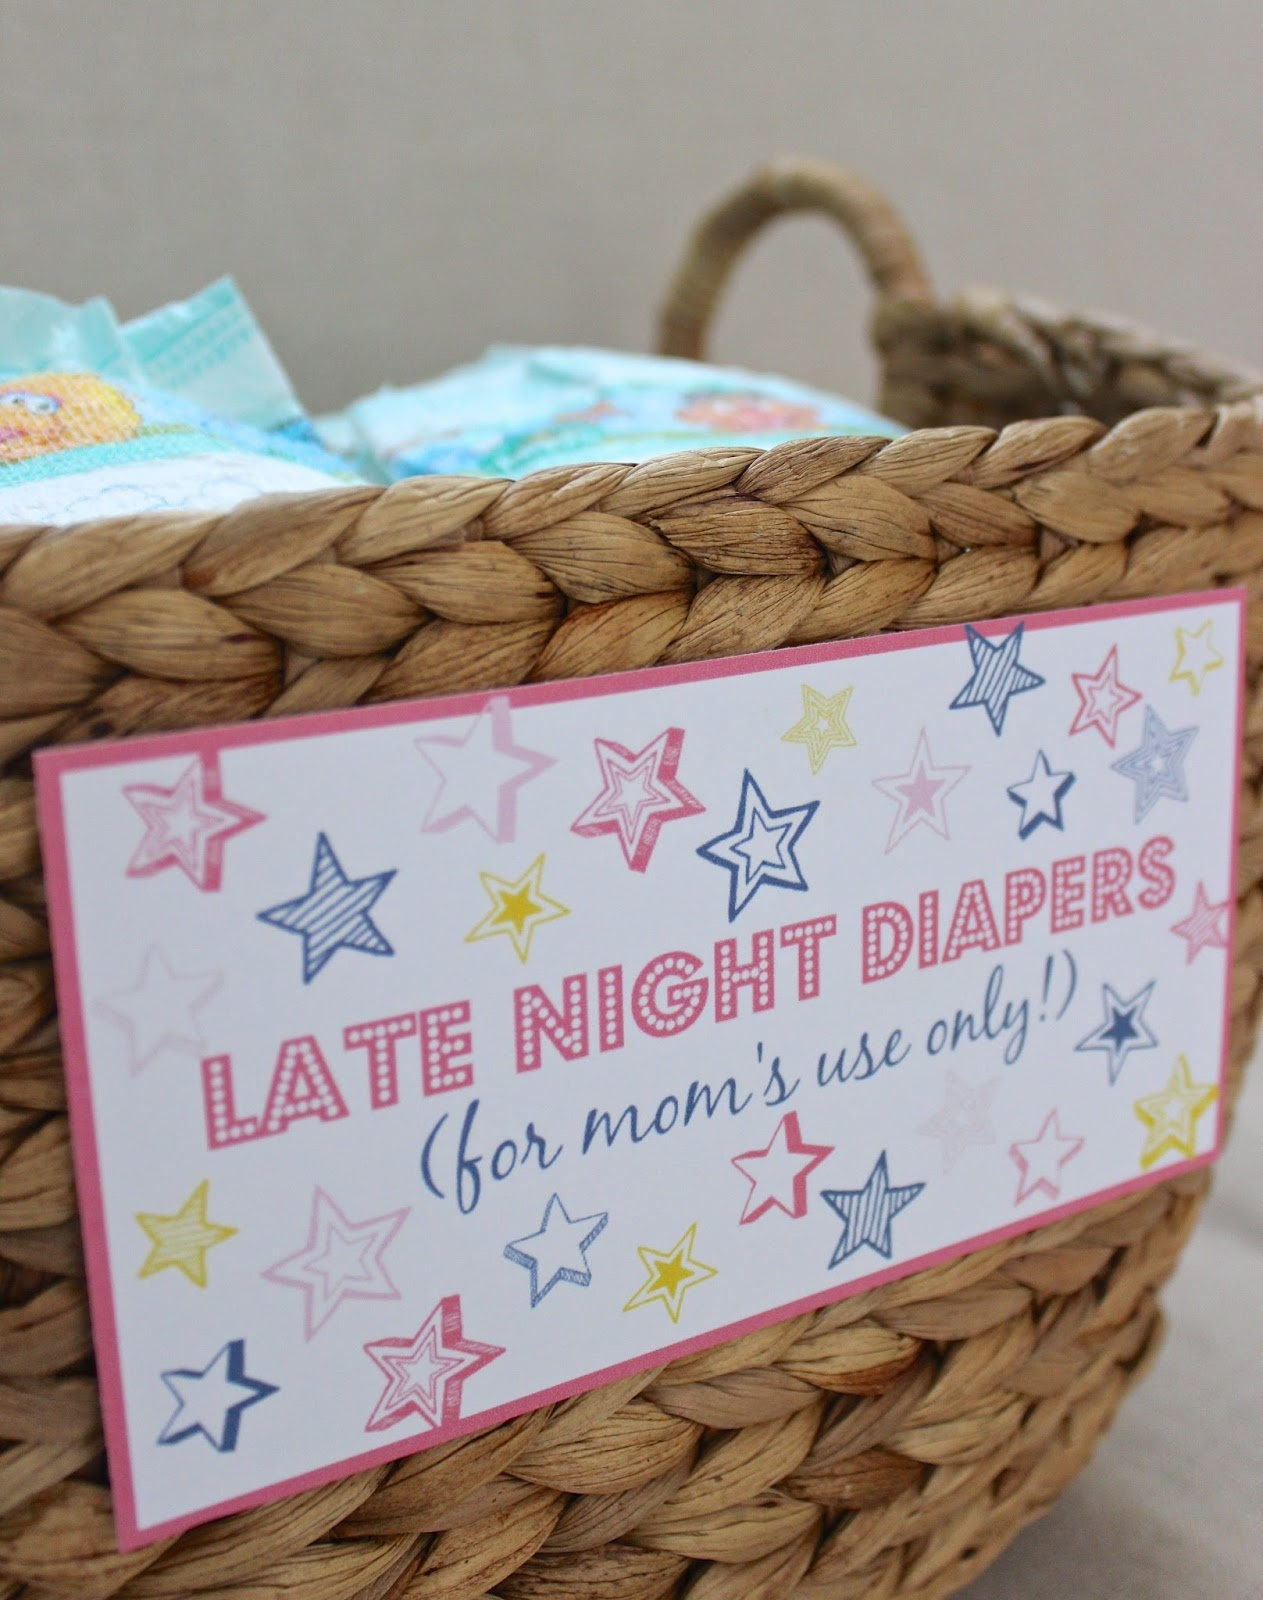 Late Night Diapers Baby Shower Printables | Drivendecor - Late Night Diaper Sign Free Printable